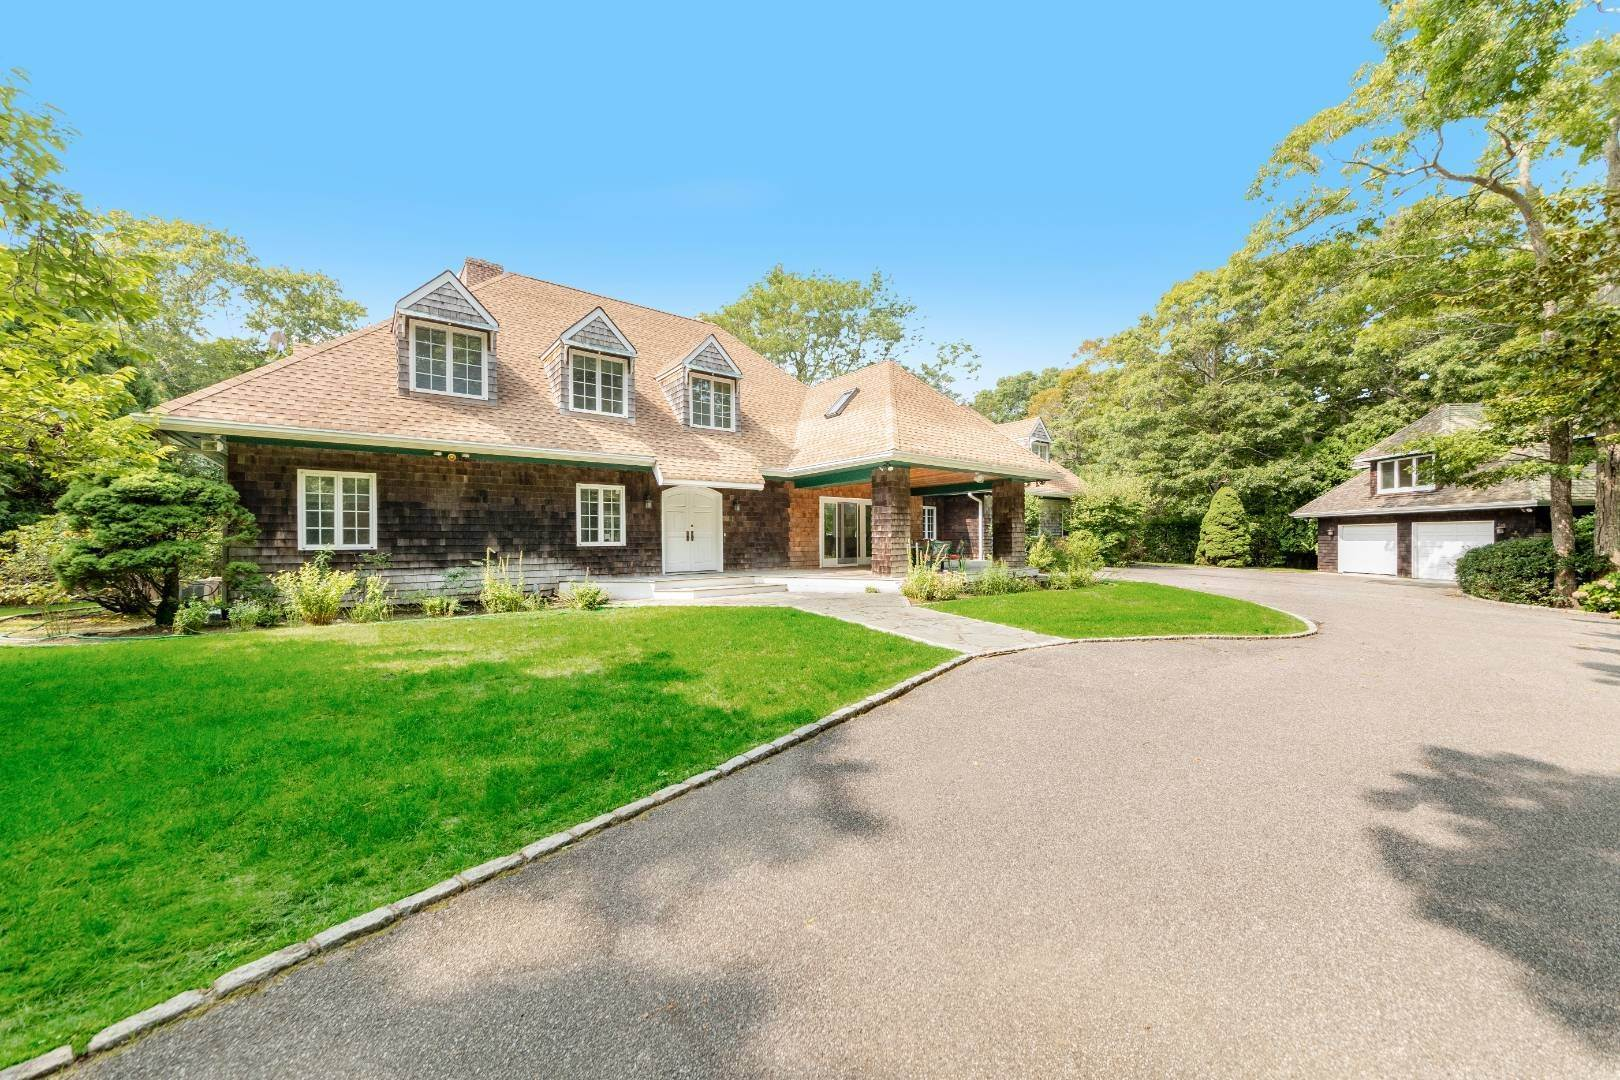 Single Family Home for Sale at Significant Amagansett Estate 51 Timber Trail, Amagansett, NY 11930